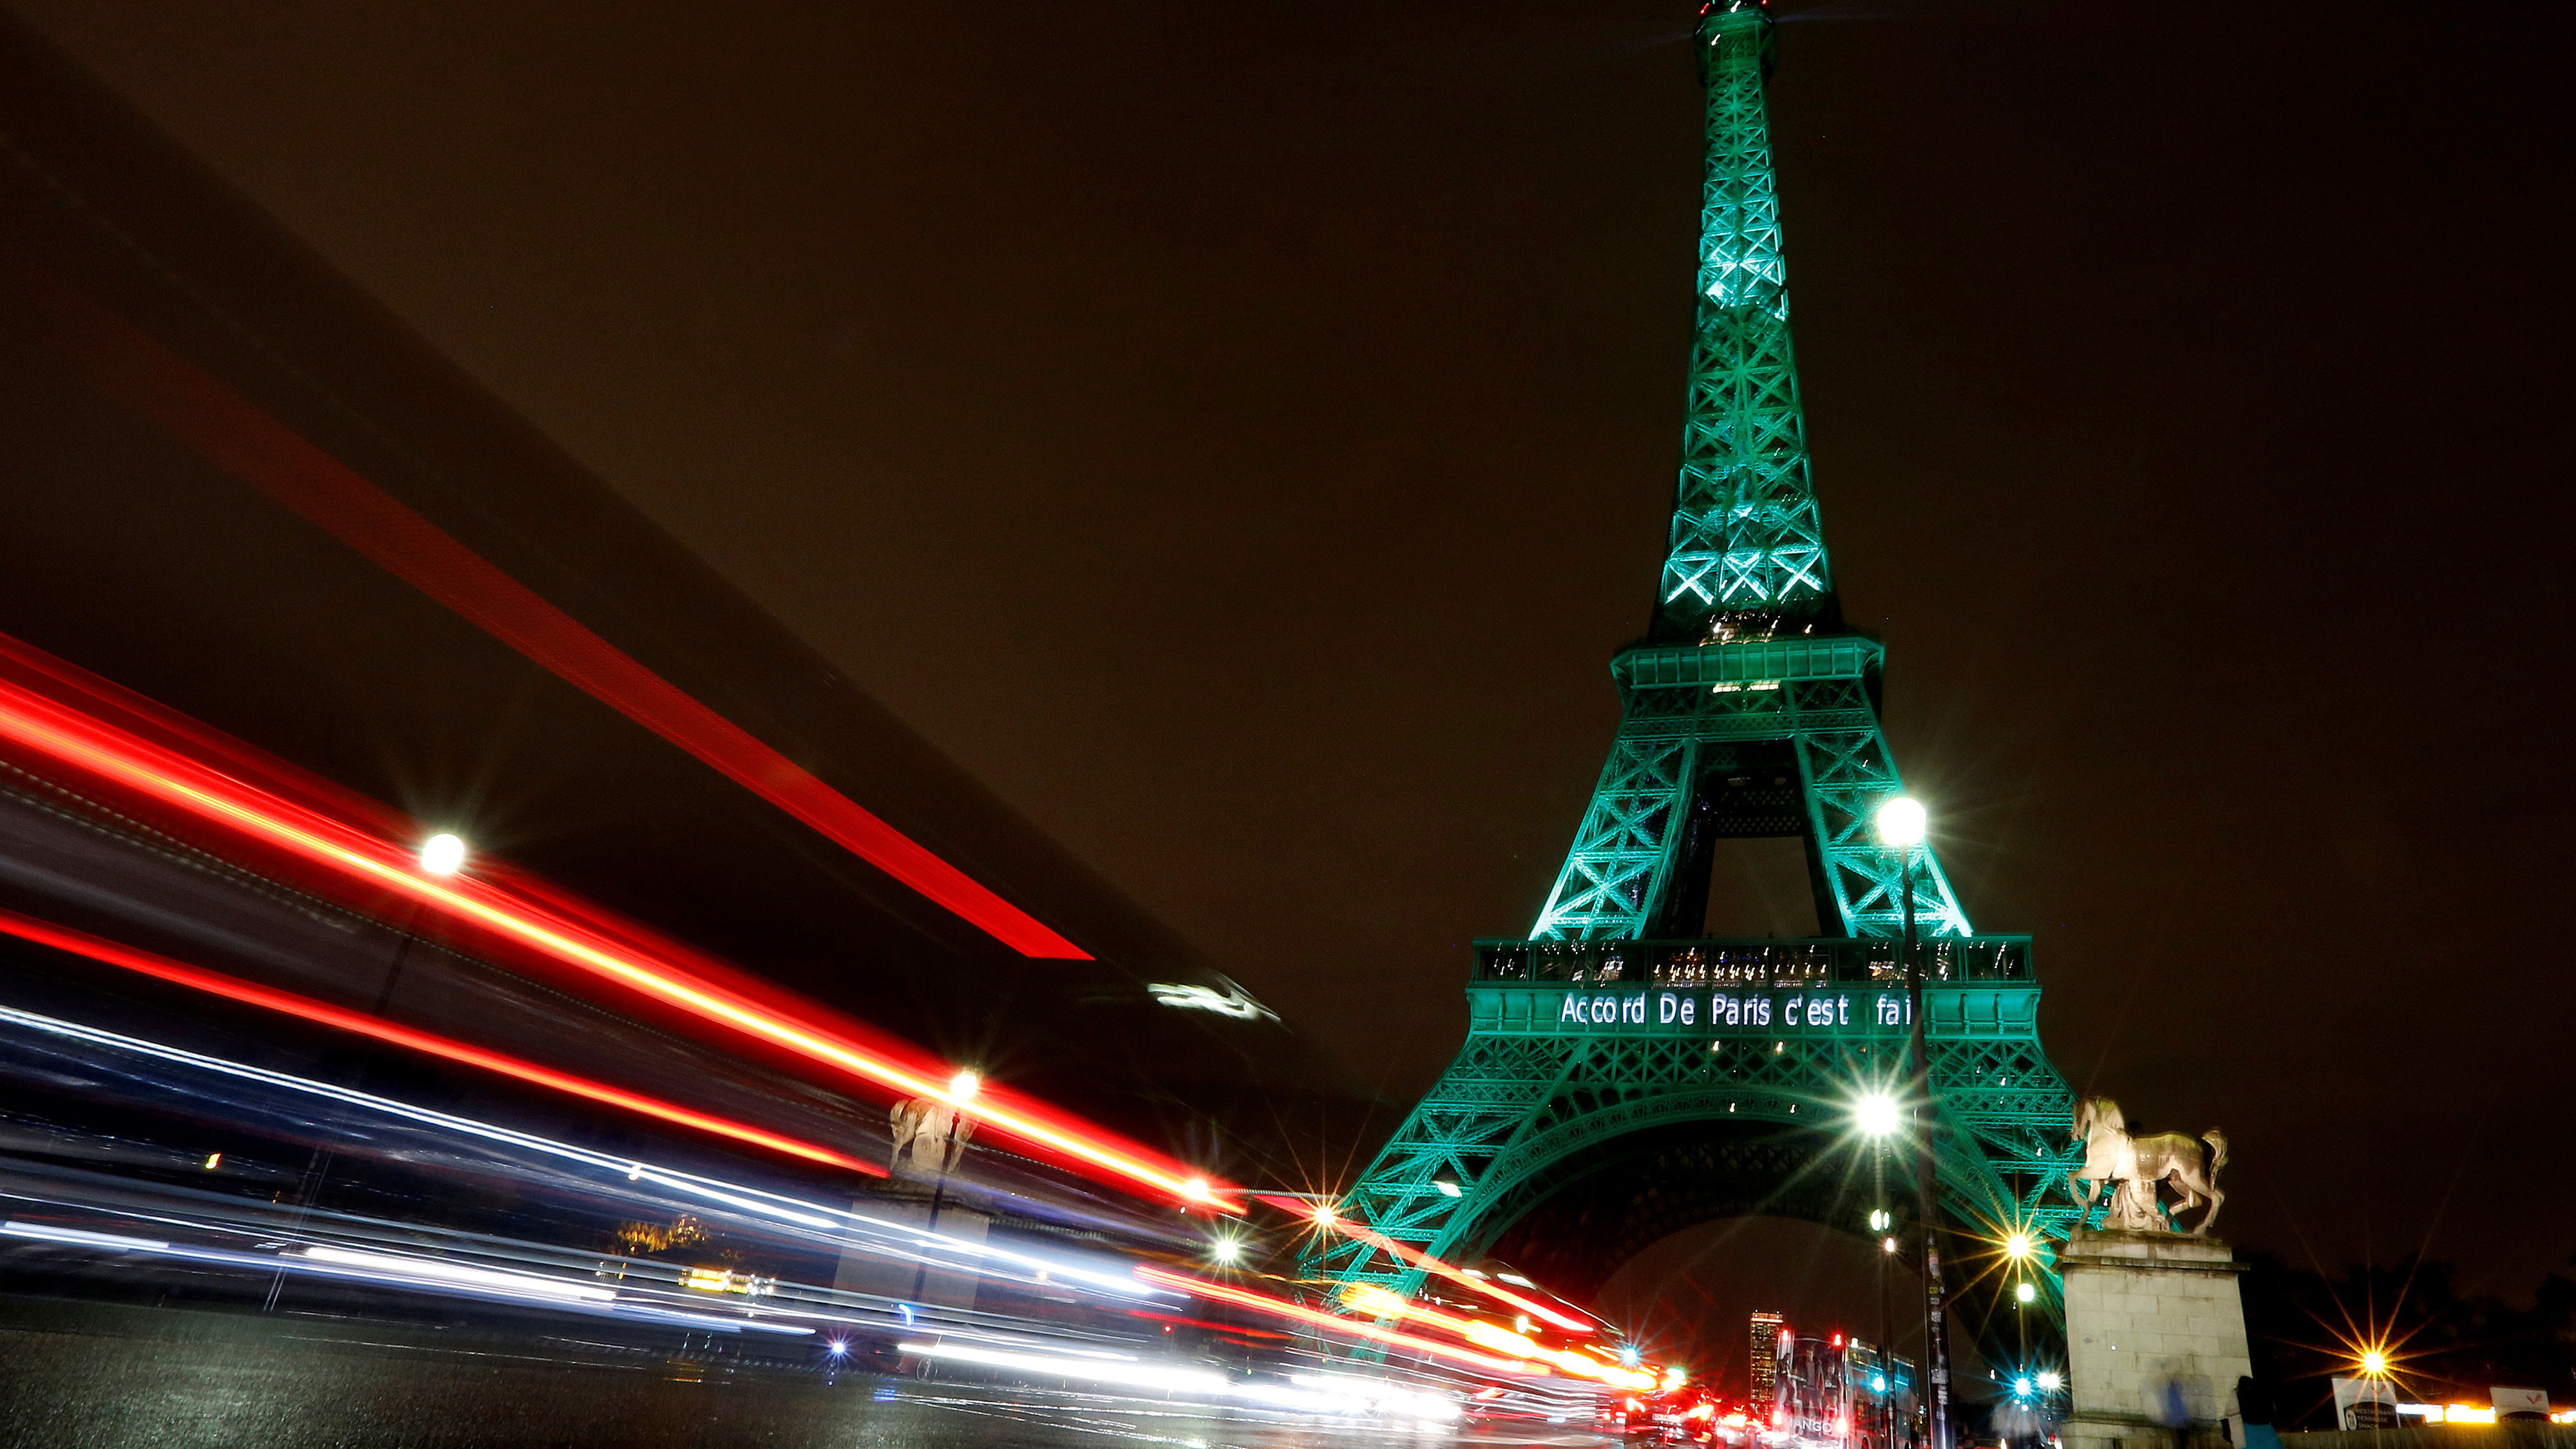 Monuments in Paris were illuminated to celebrate the adoption of the Paris Agreement on climate change.